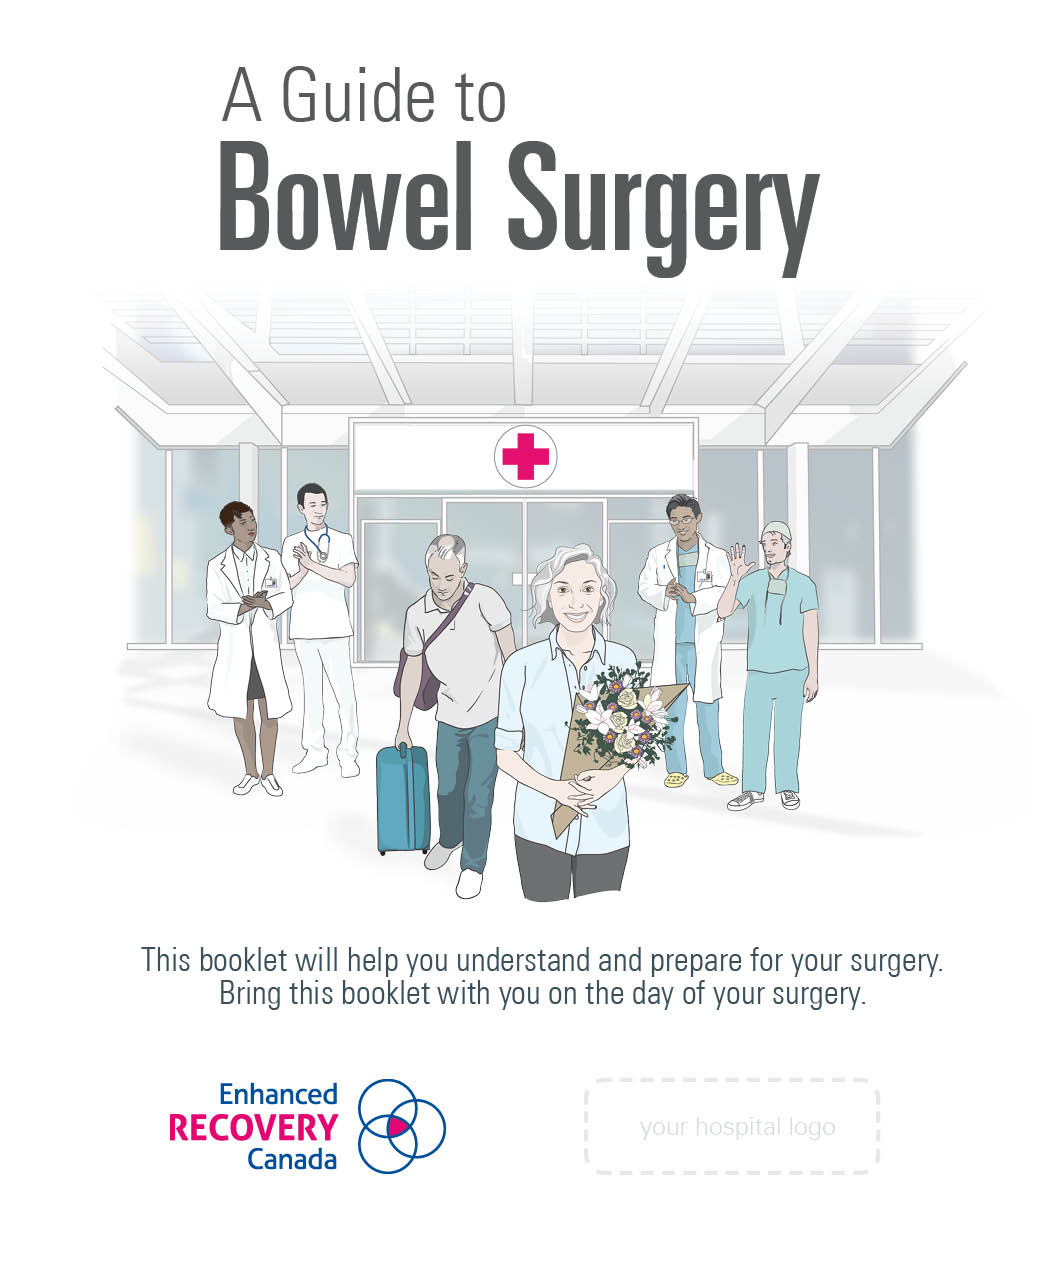 Bowel surgery booklet cover